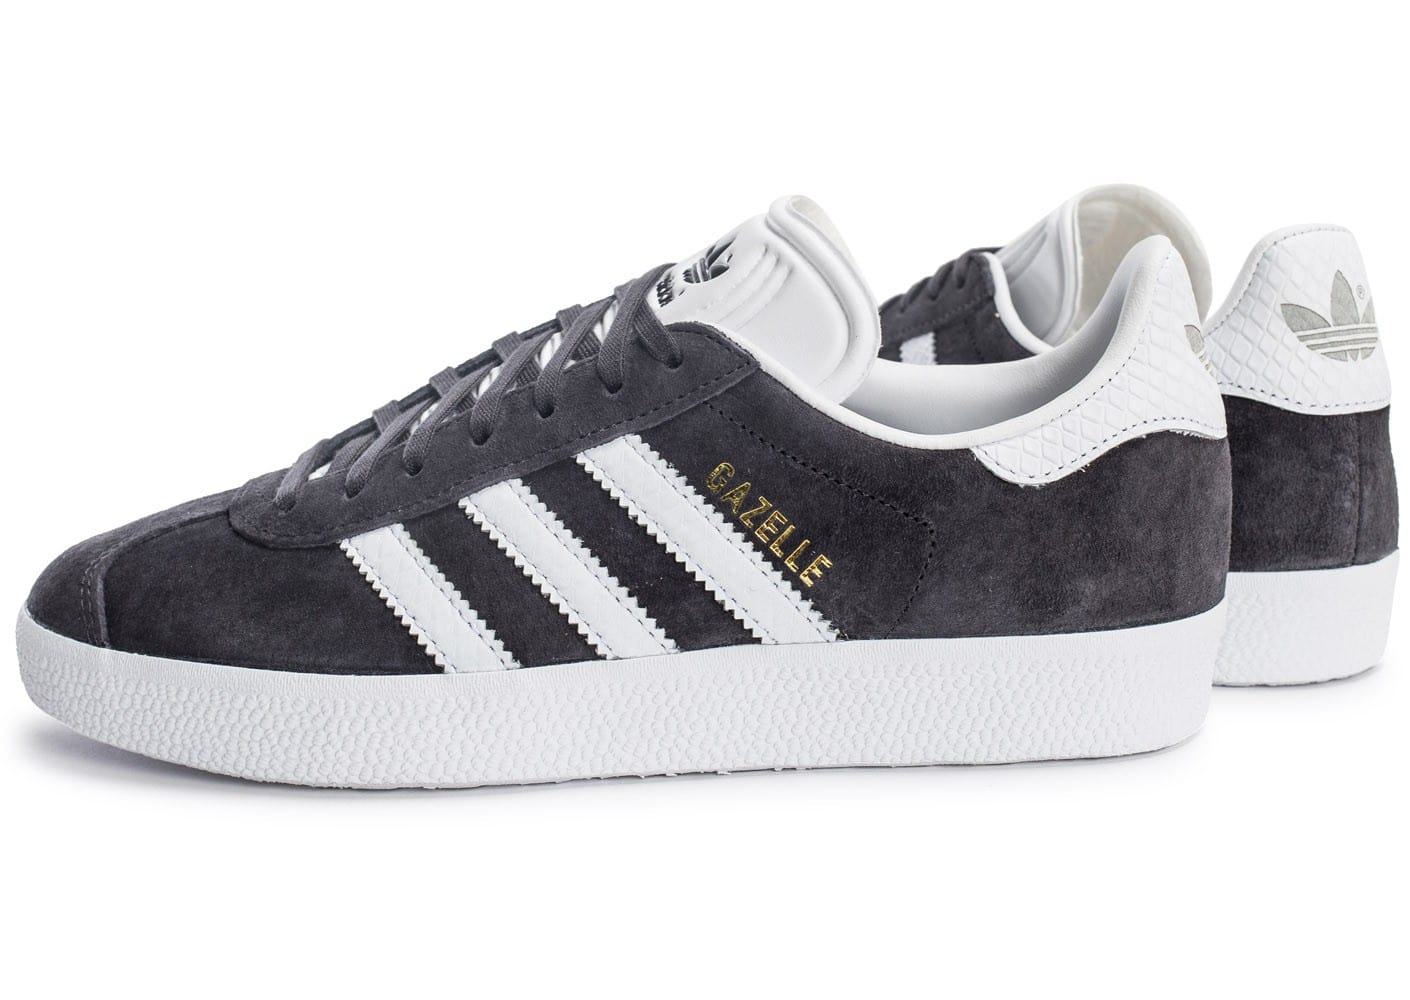 adidas gazelle w anthracite chaussures adidas chausport. Black Bedroom Furniture Sets. Home Design Ideas